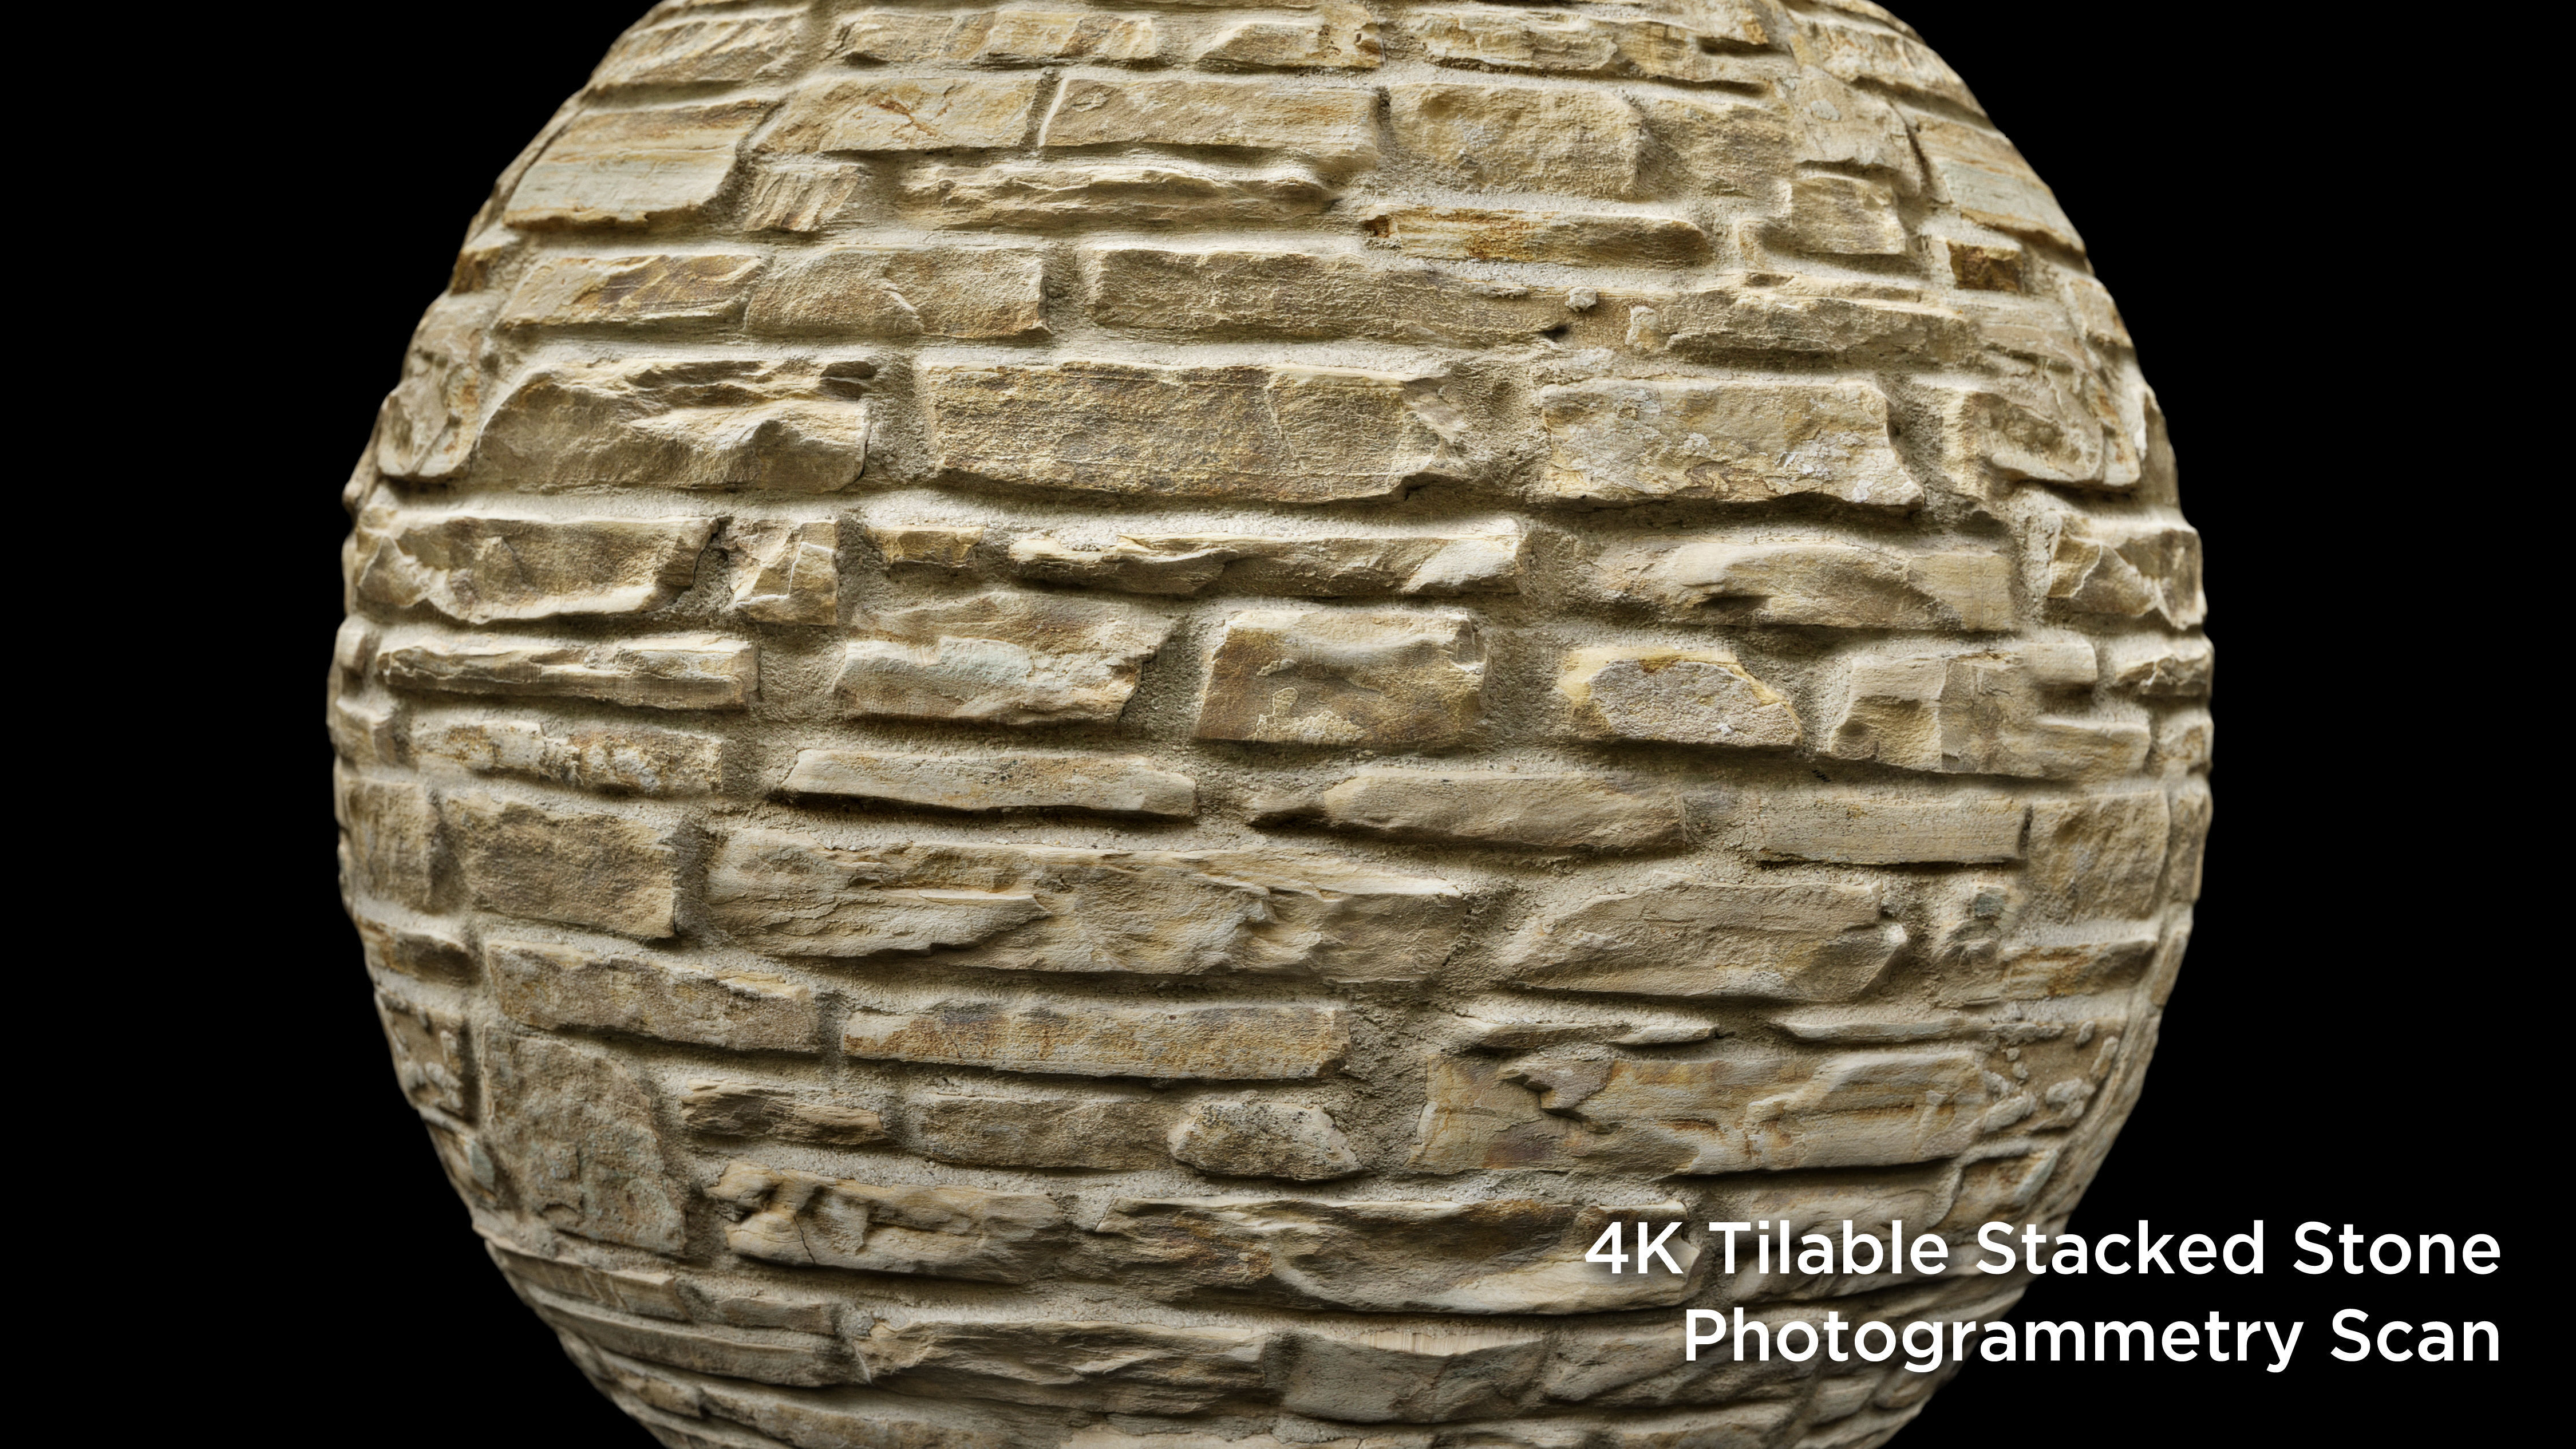 Stacked Stone Texture Tileable 4k Photogrammetry Scan 3d Model